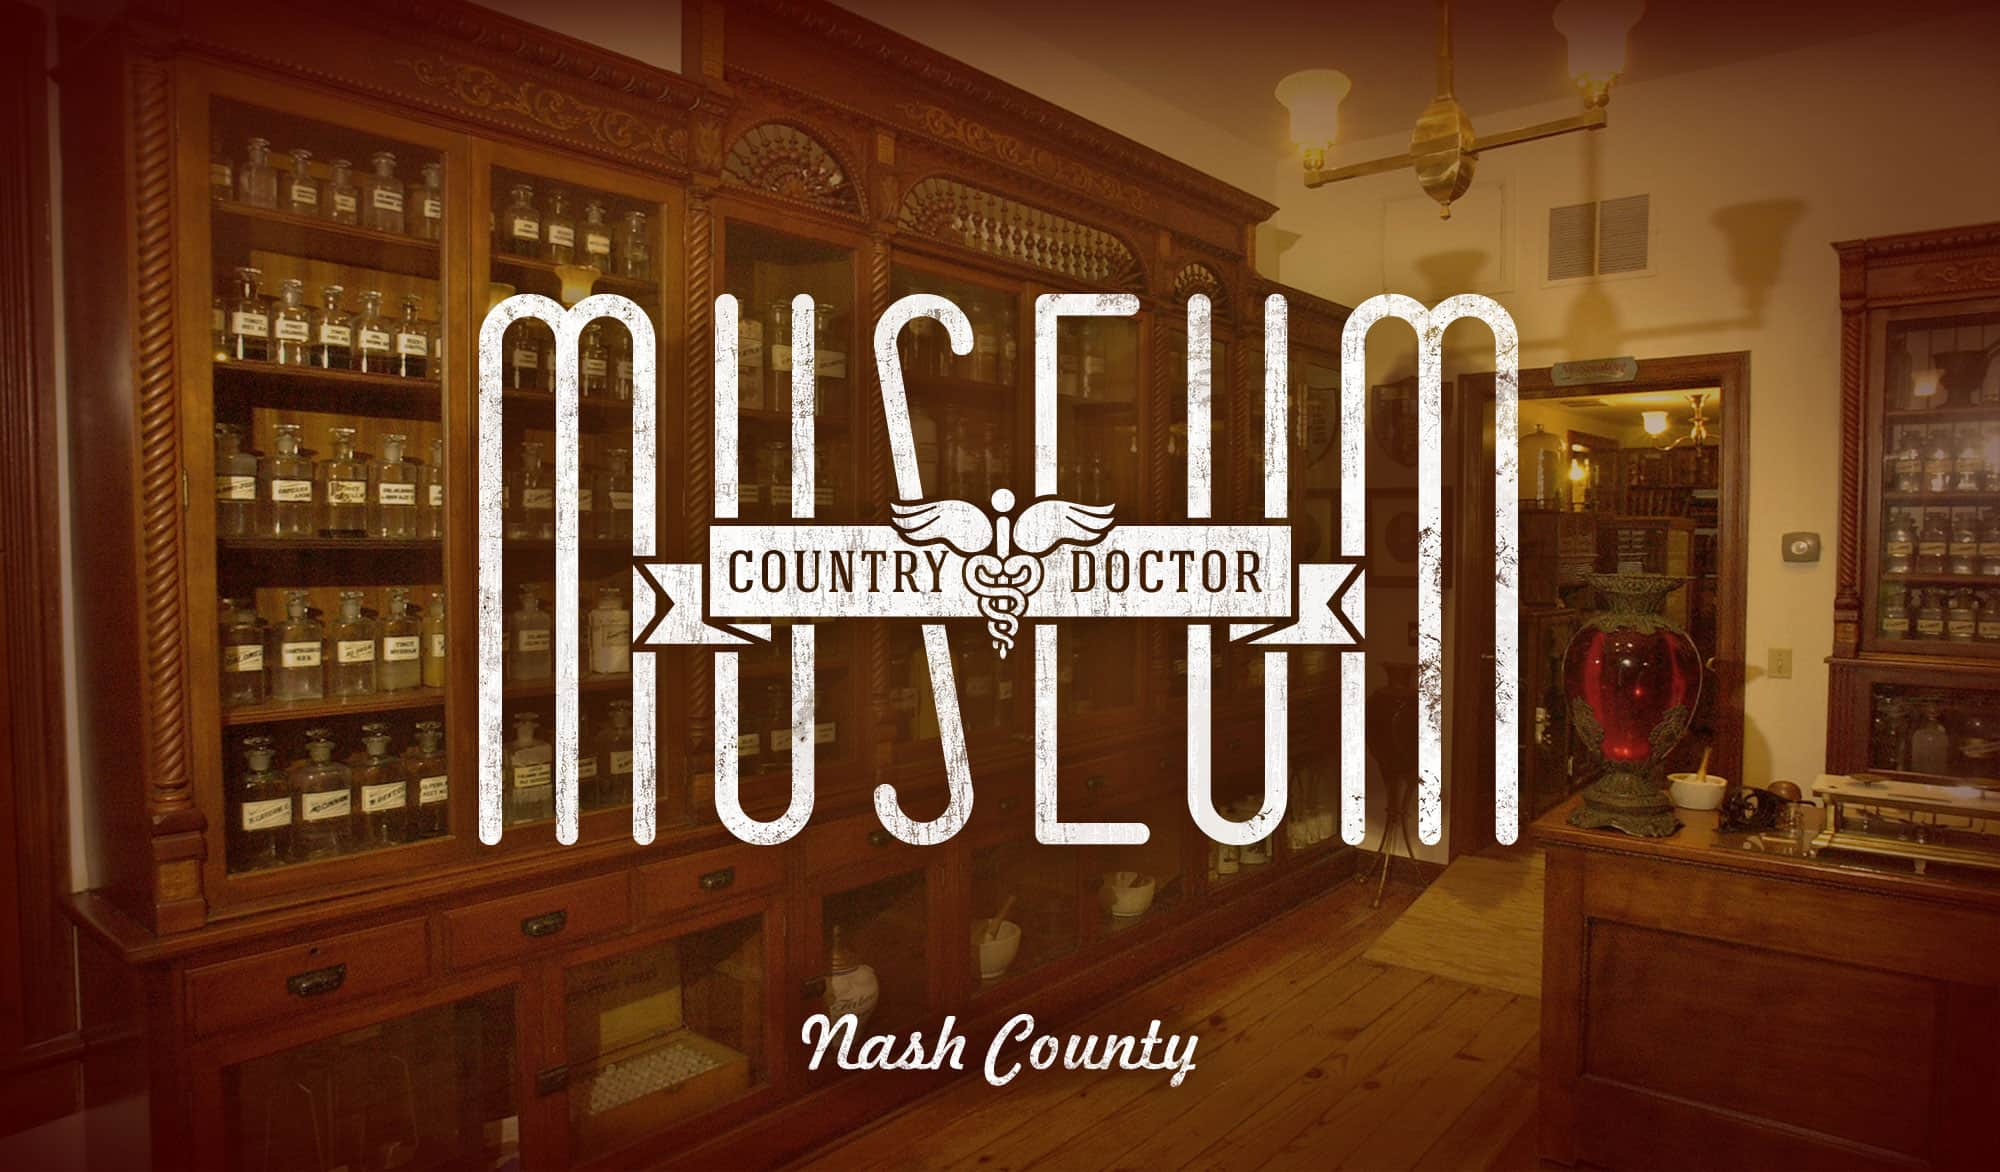 Country Doctor Museum